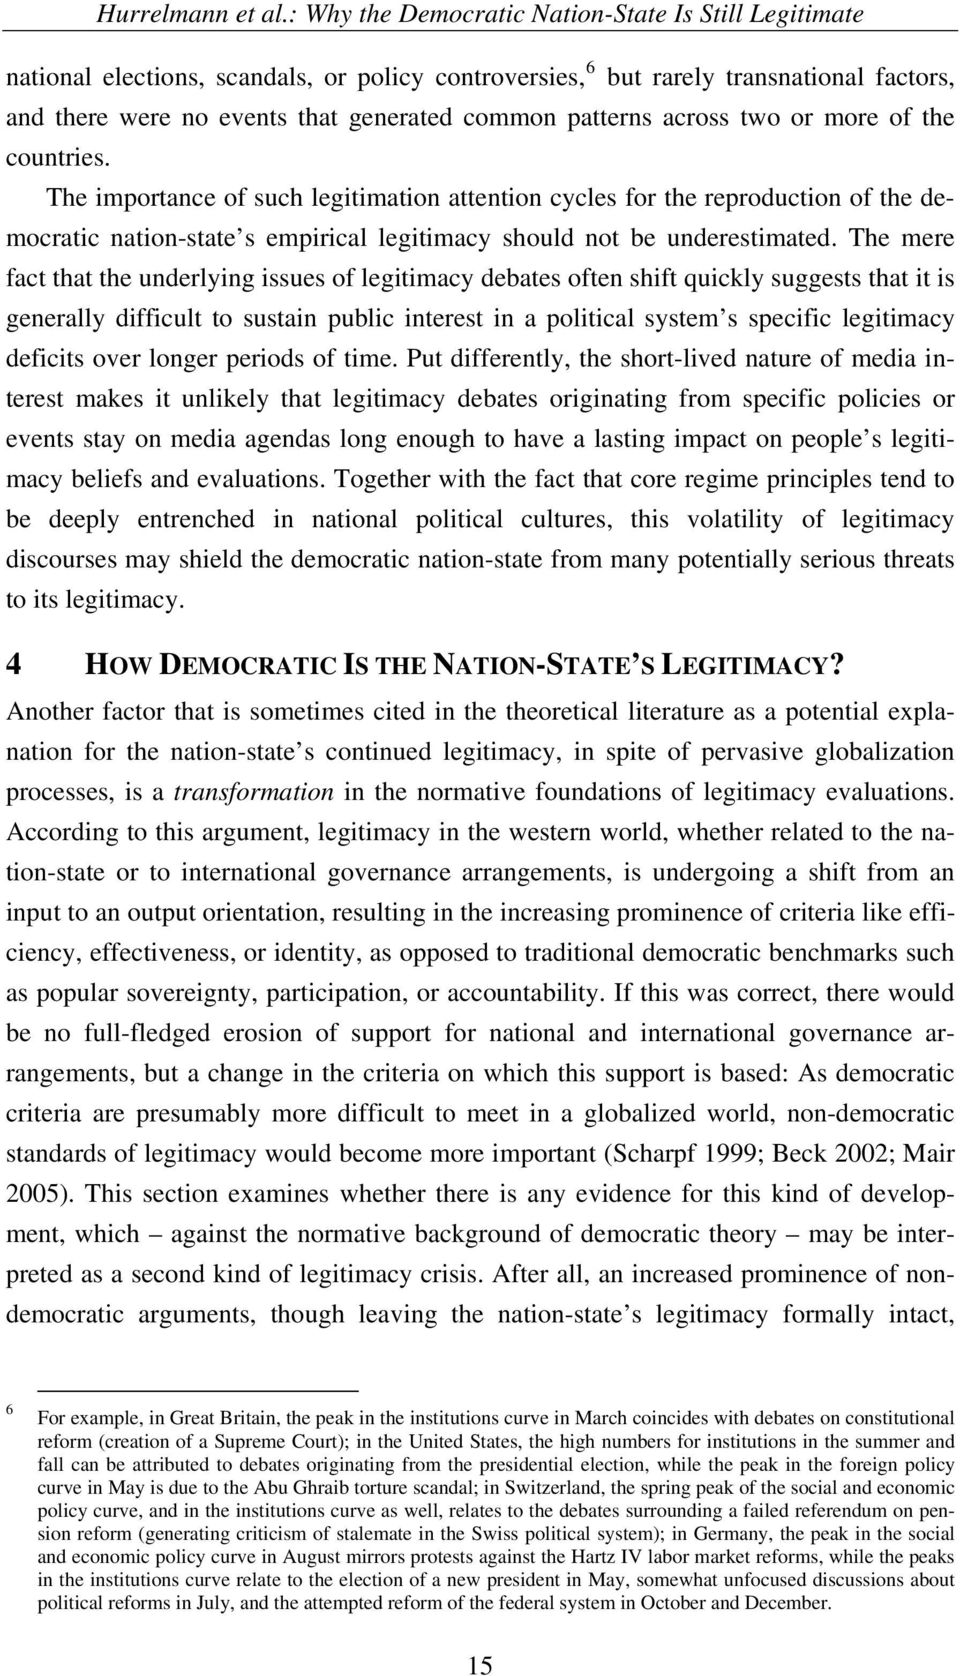 The mere fact that the underlying issues of legitimacy debates often shift quickly suggests that it is generally difficult to sustain public interest in a political system s specific legitimacy